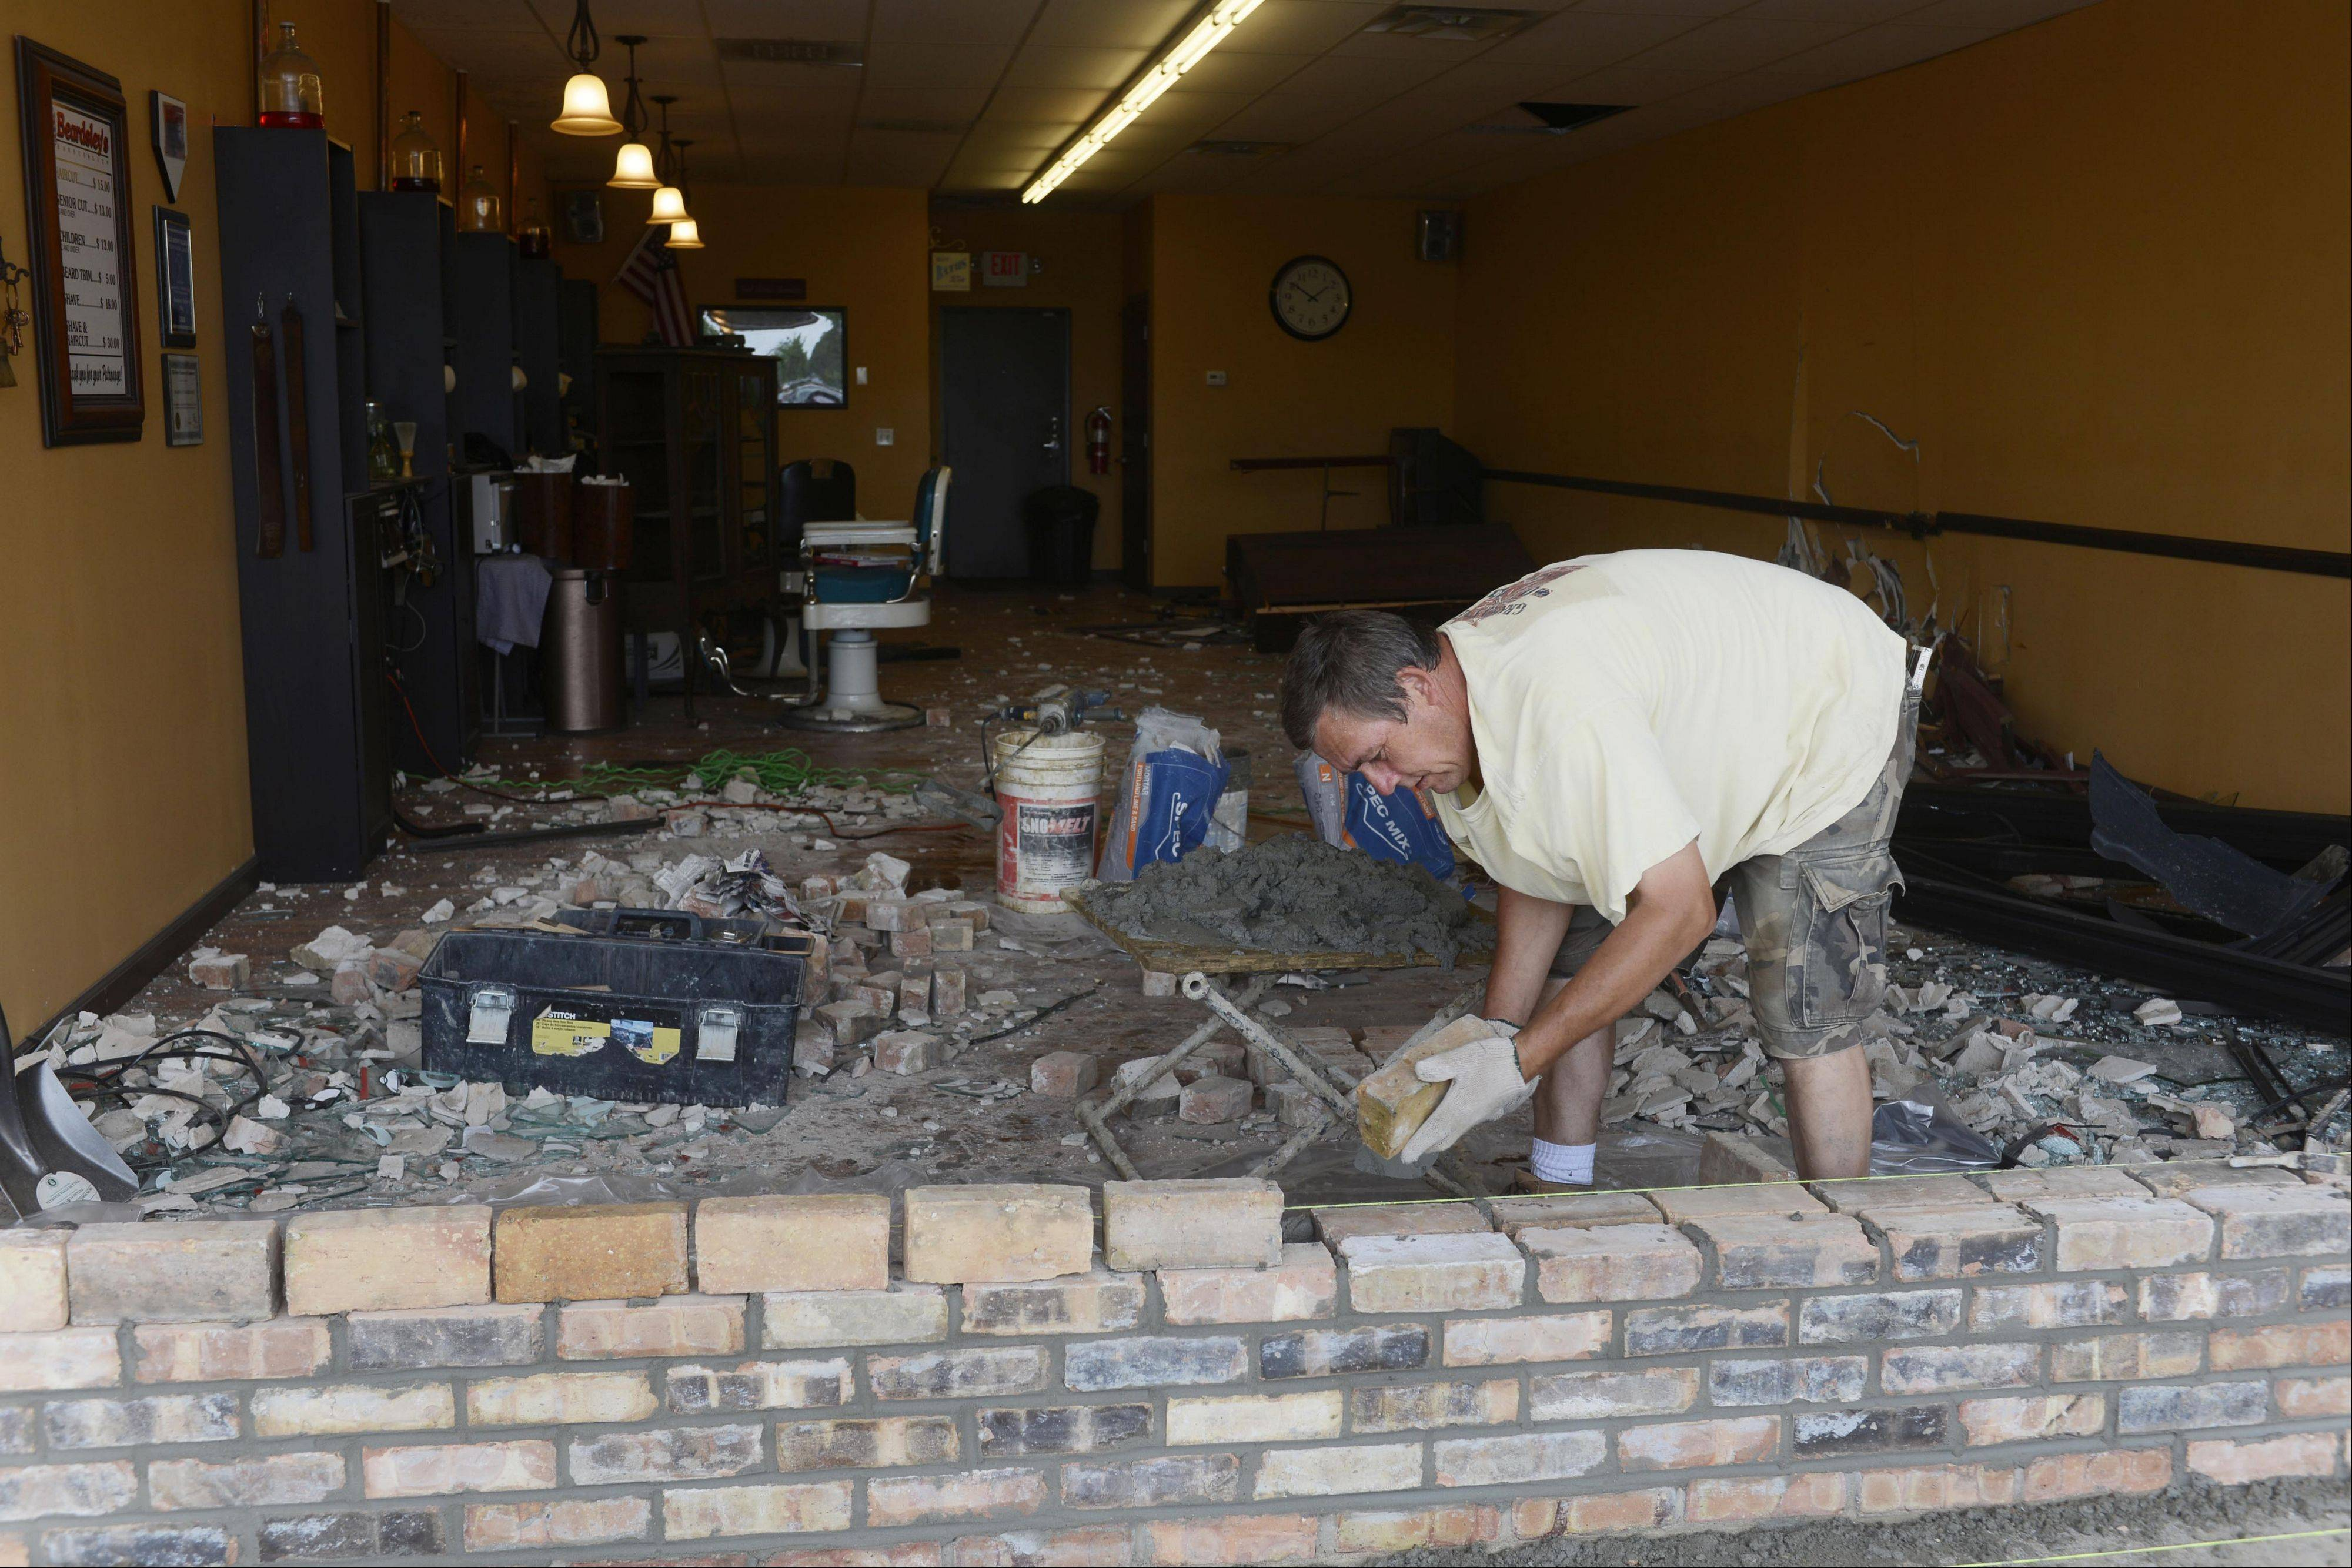 A masonry worker who declined to be identified replaces bricks at the front of Beardsley's Barber Shop in Elk Grove Village Friday afternoon after a car plowed through the window and entered the shop during the morning.